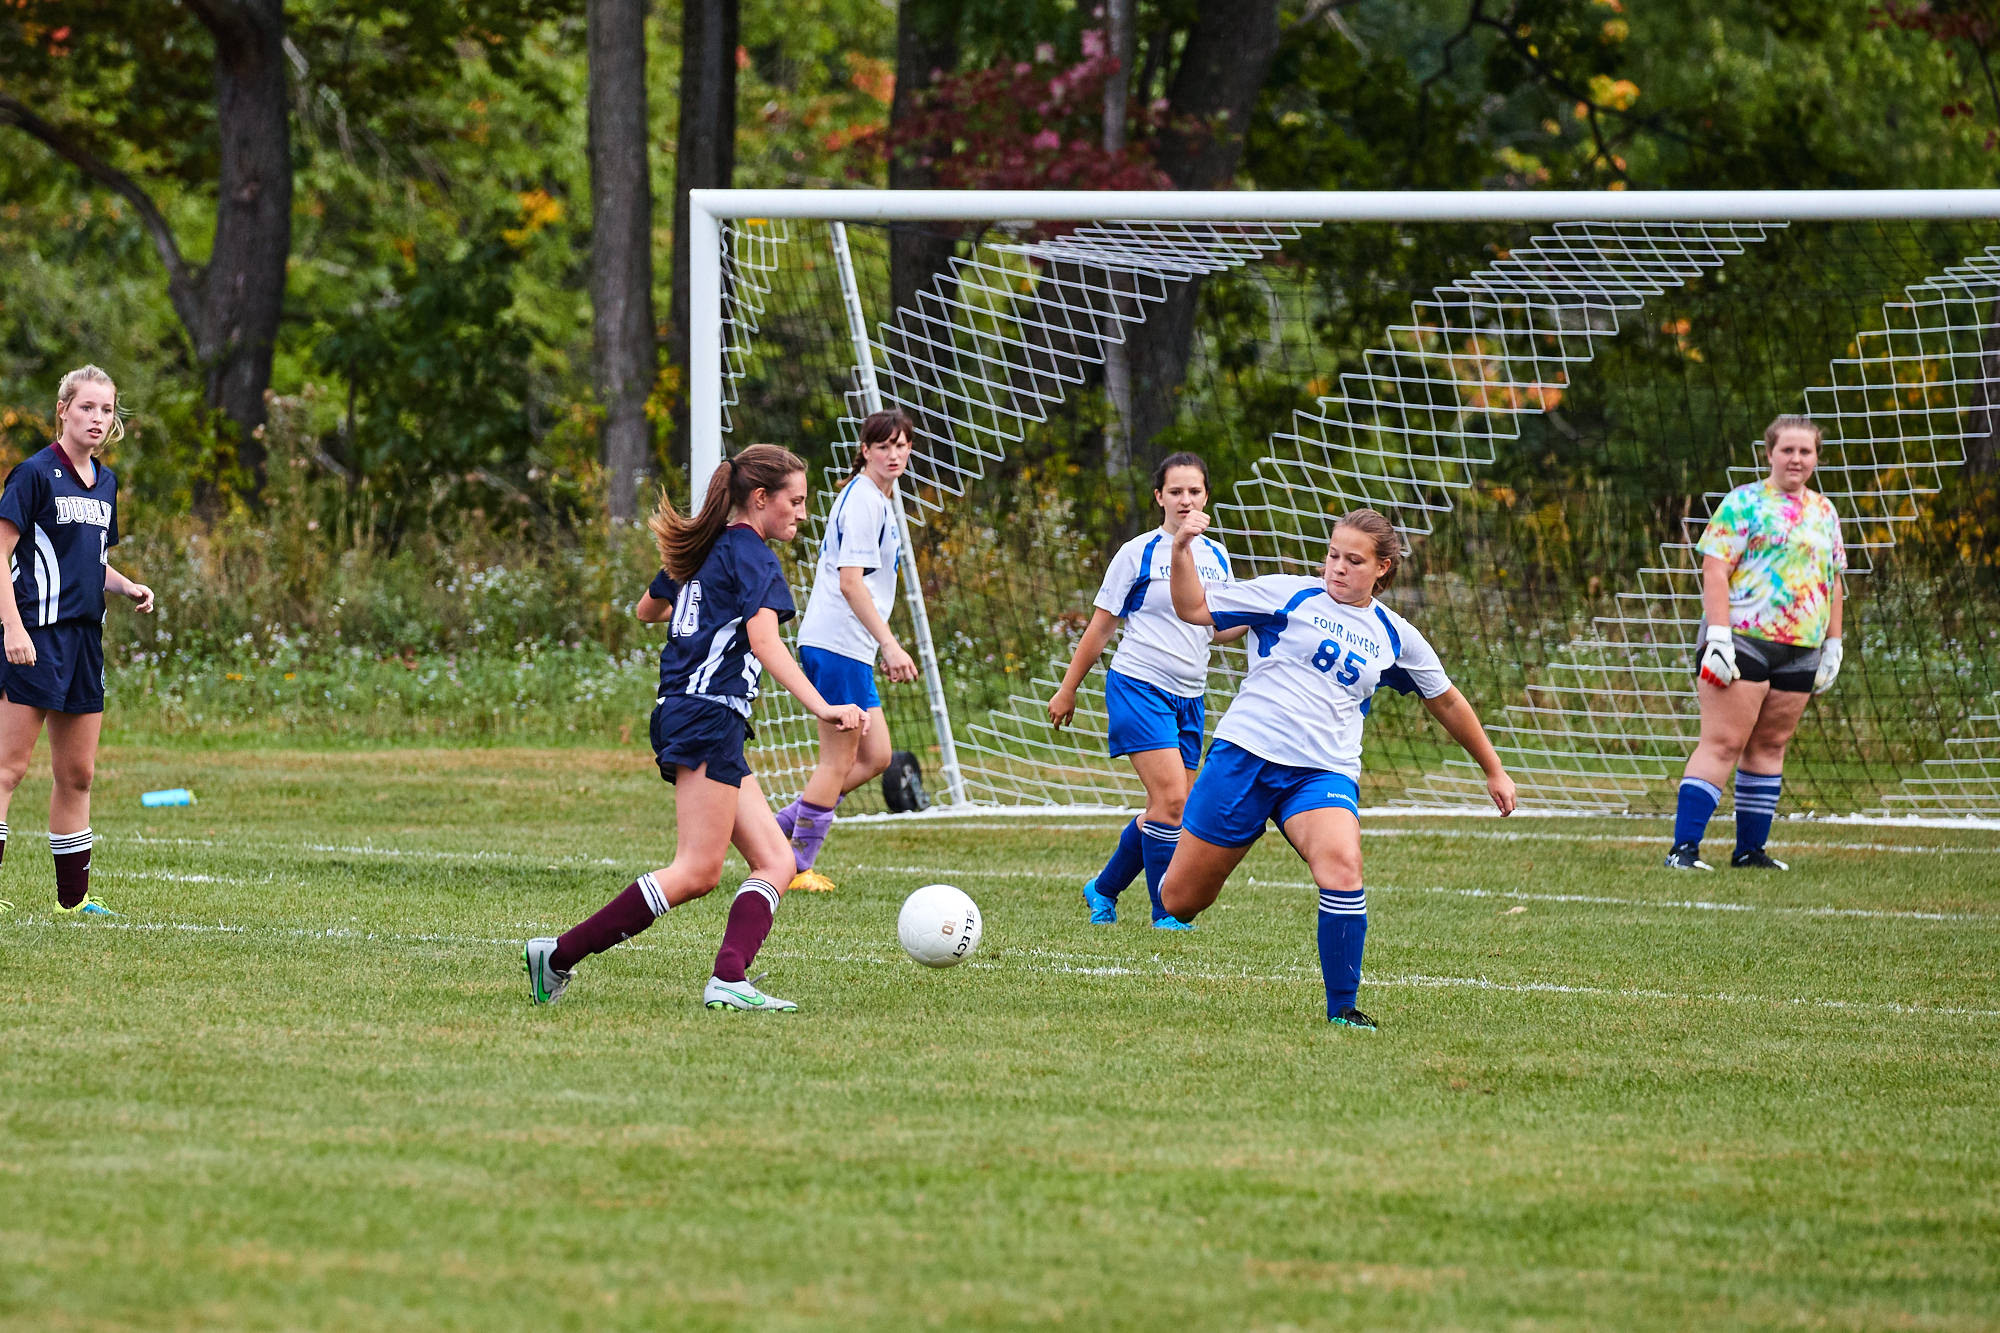 Girls Varsity Soccer vs. Four Rivers Charter Public School - September 23, 2016 - 41974- 000170.jpg